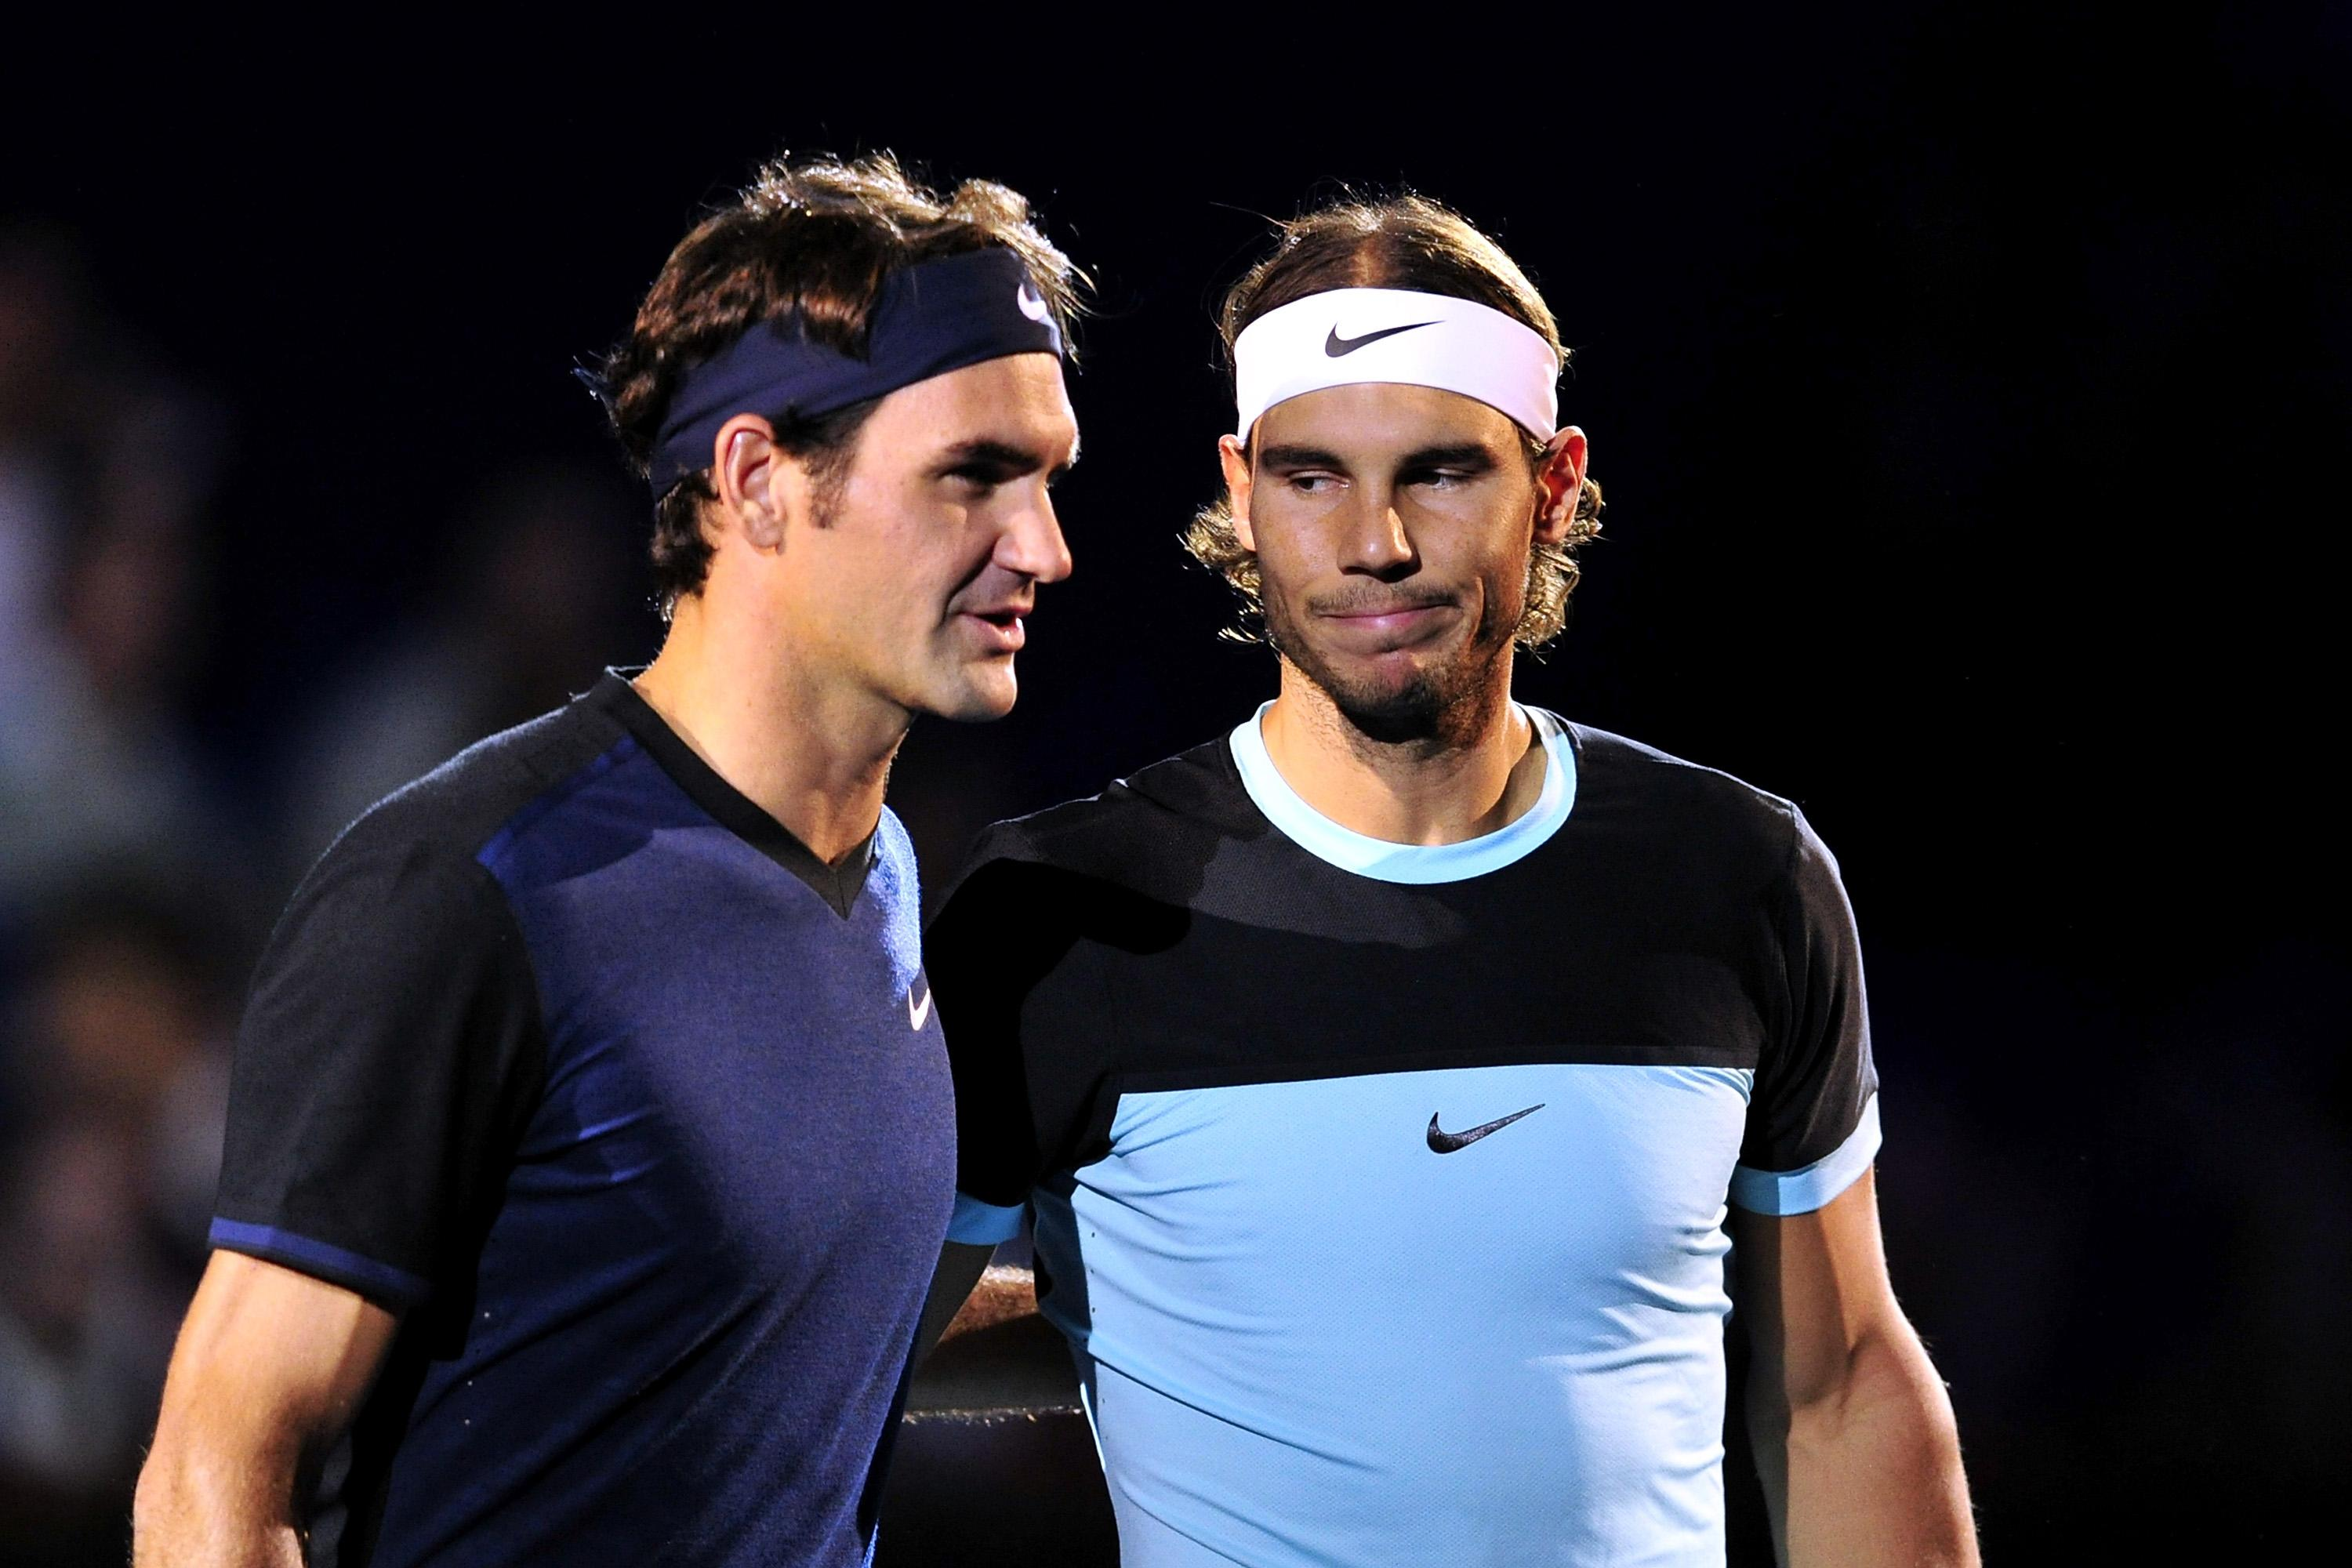 Roger Federer and Rafael Nadal still want more after Australian Open